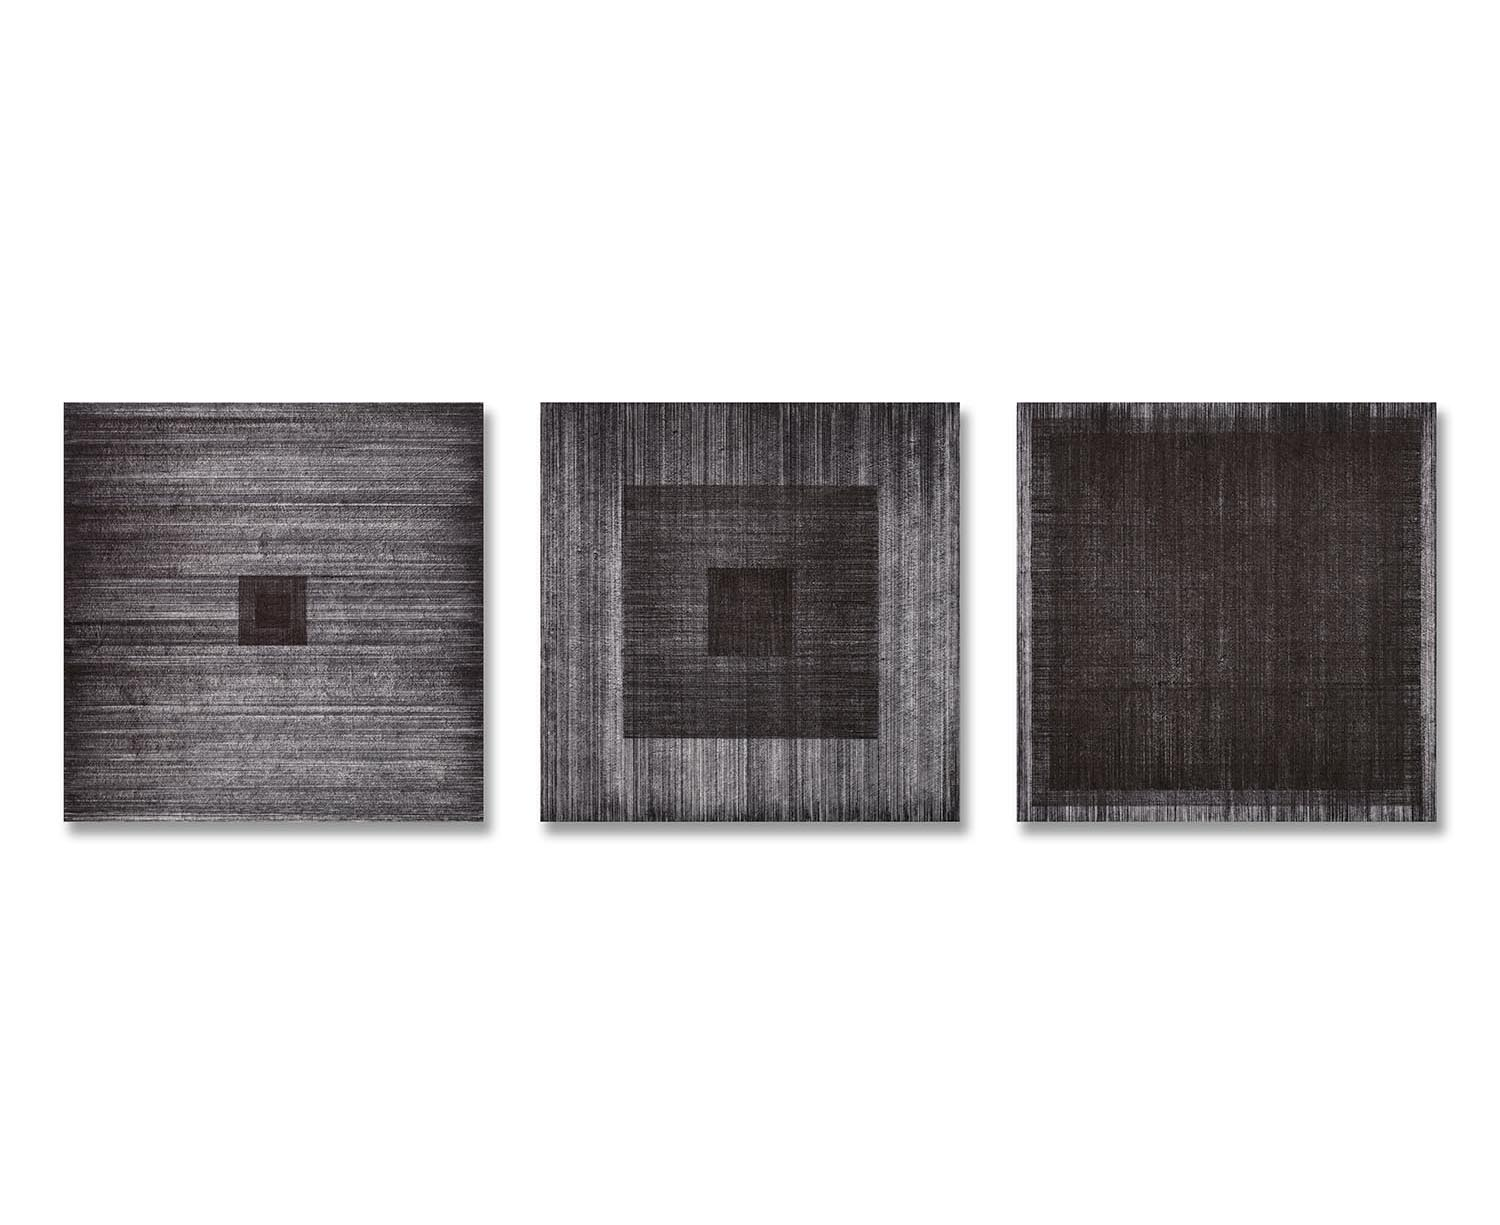 Meditation No.15, 16, 17    Sumi-ink Drawing on Rice paper  50x50 (cm) each  2016